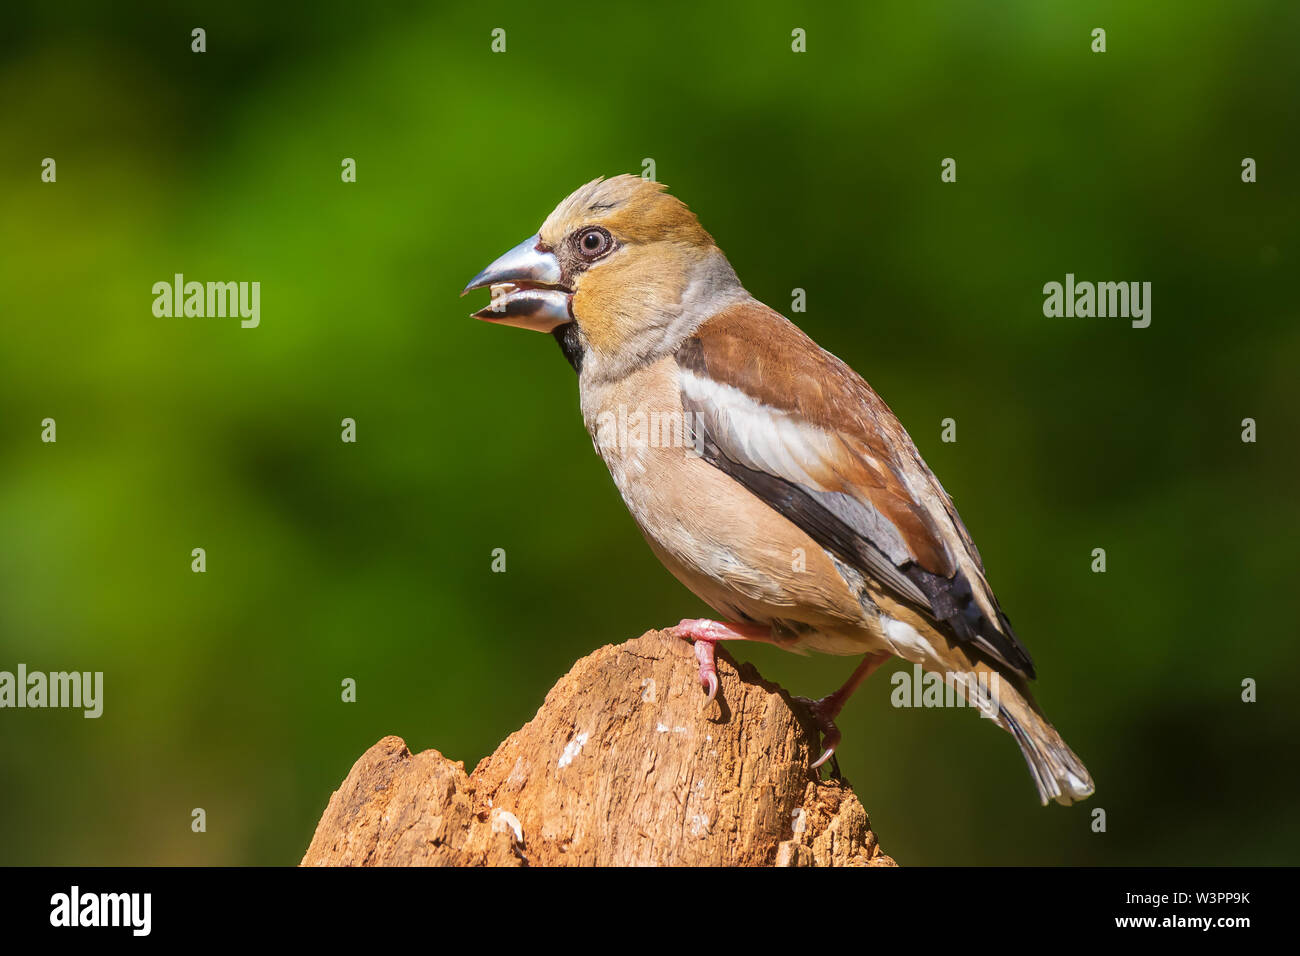 Closeup of a female hawfinch Coccothraustes coccothraustes bird perched in a forest. Selective focus and natural sunlight - Stock Image